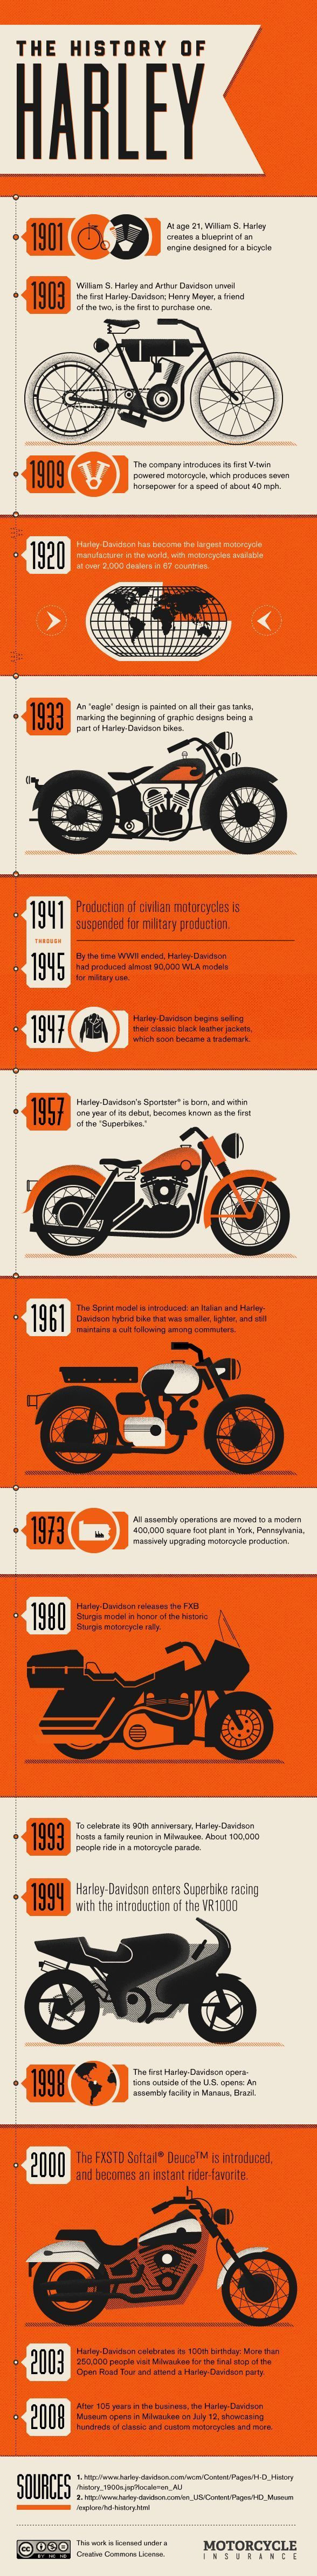 446 best motorcycle fun images on pinterest | harley davidson